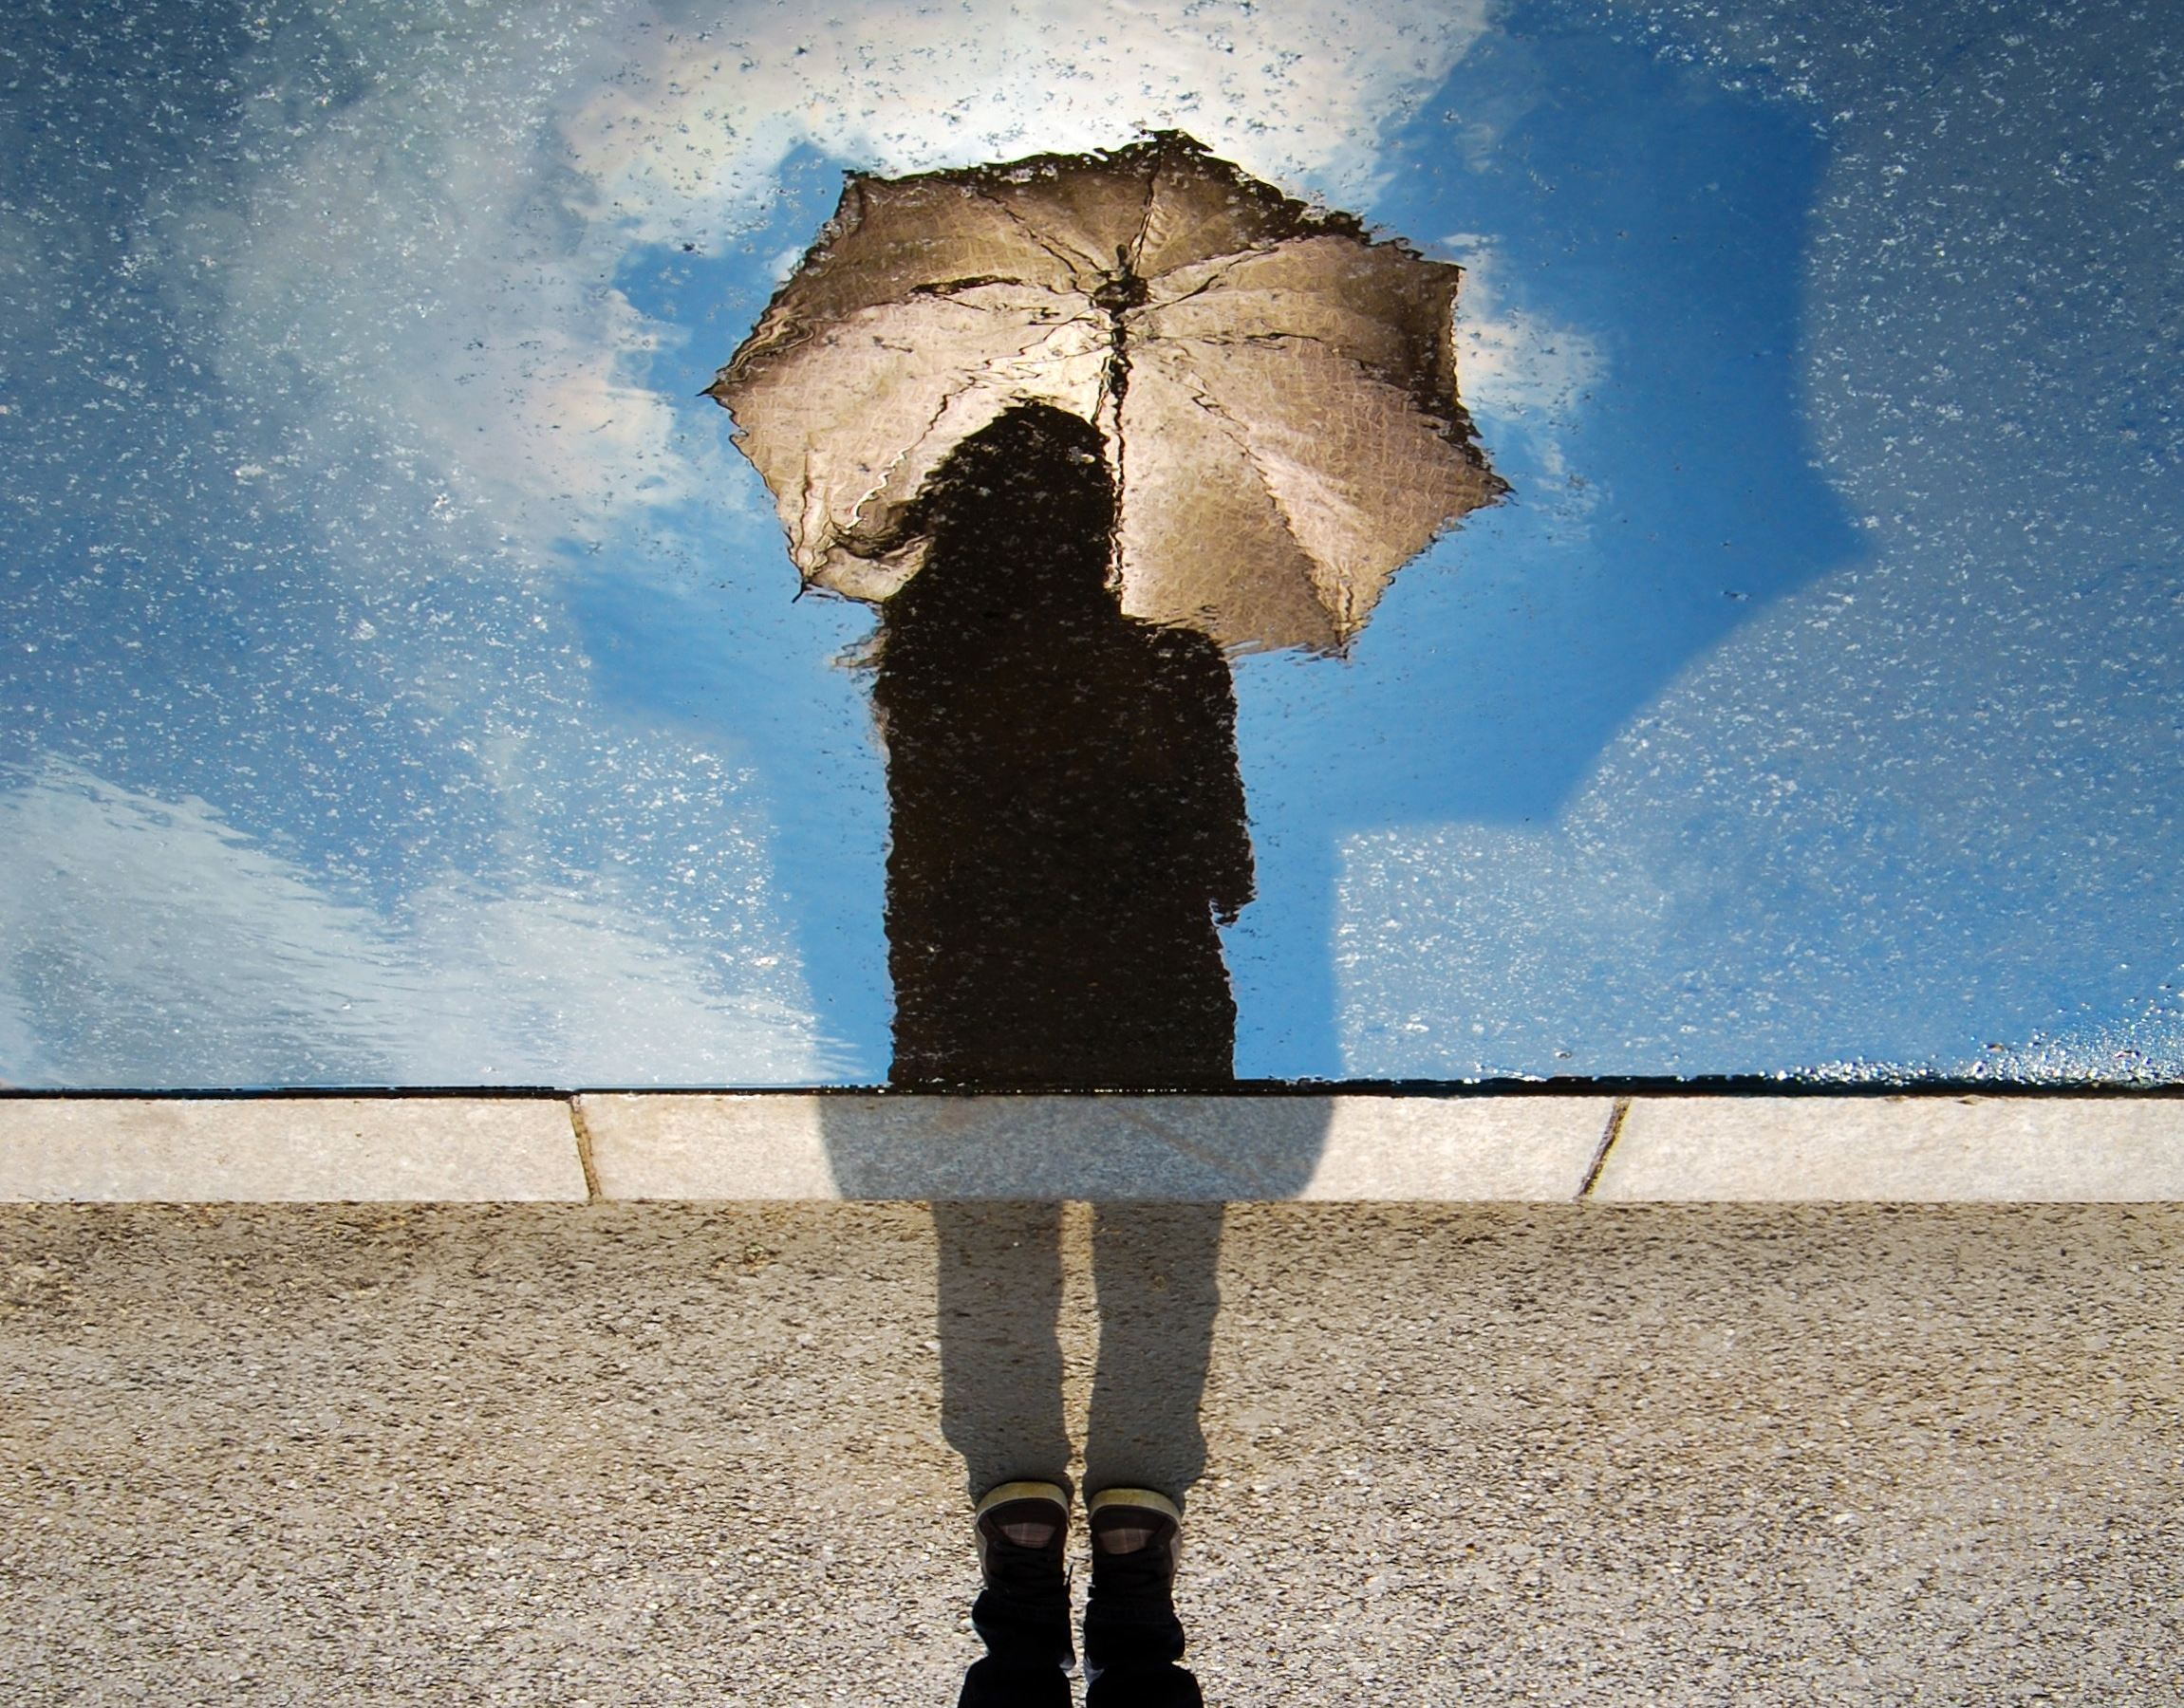 Woman with reflection in water holding an umbrella in the rain and wind